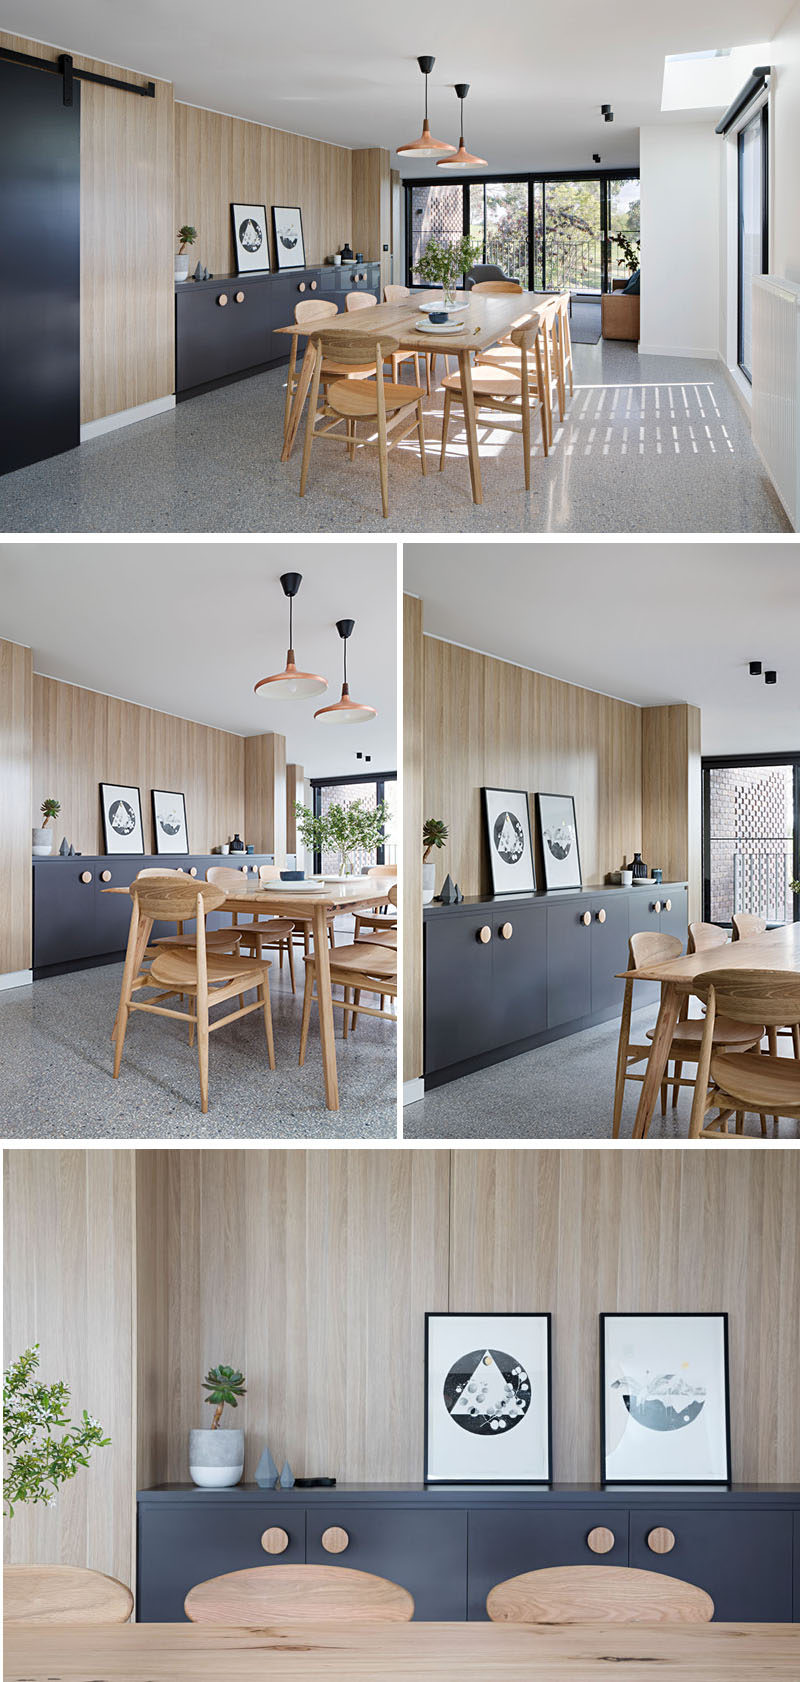 In this modern dining room, light wood dining table and chairs play off the light wood walls, and a matte black built-in sideboard with wood handles provides ample storage and a place to display decorative items.